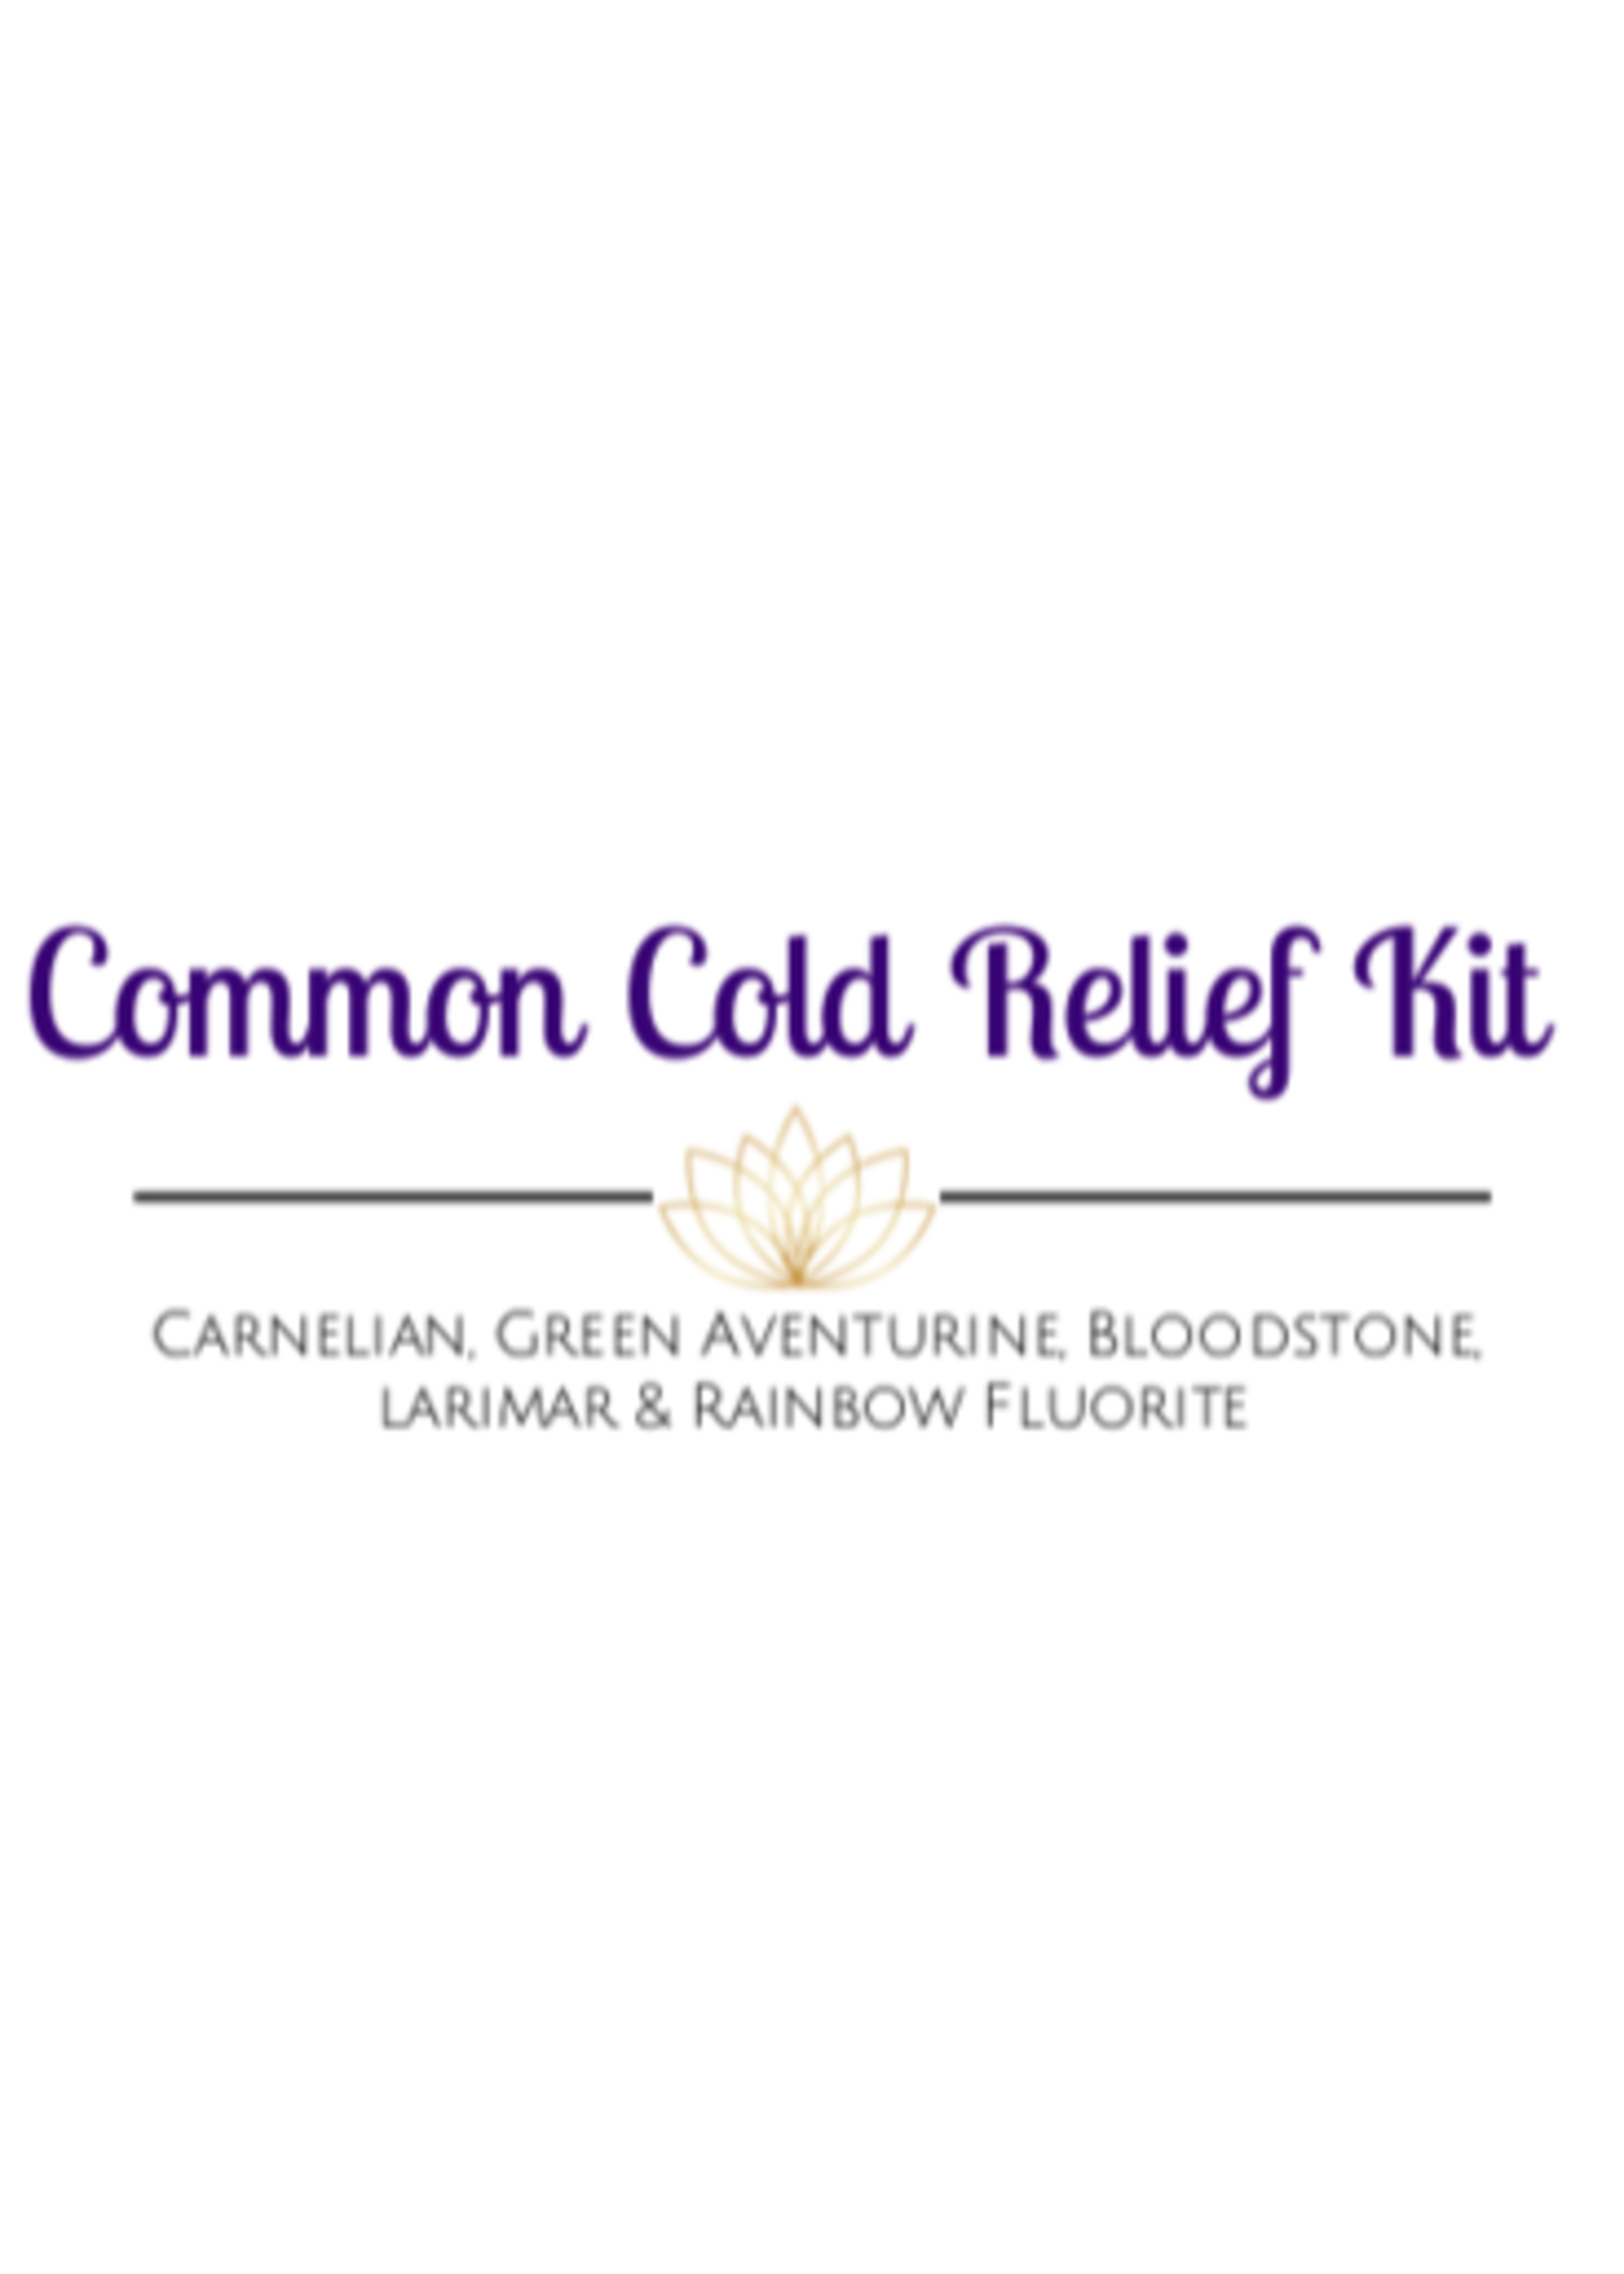 Common Cold Relief Crystal Kit Cards - Box of 100